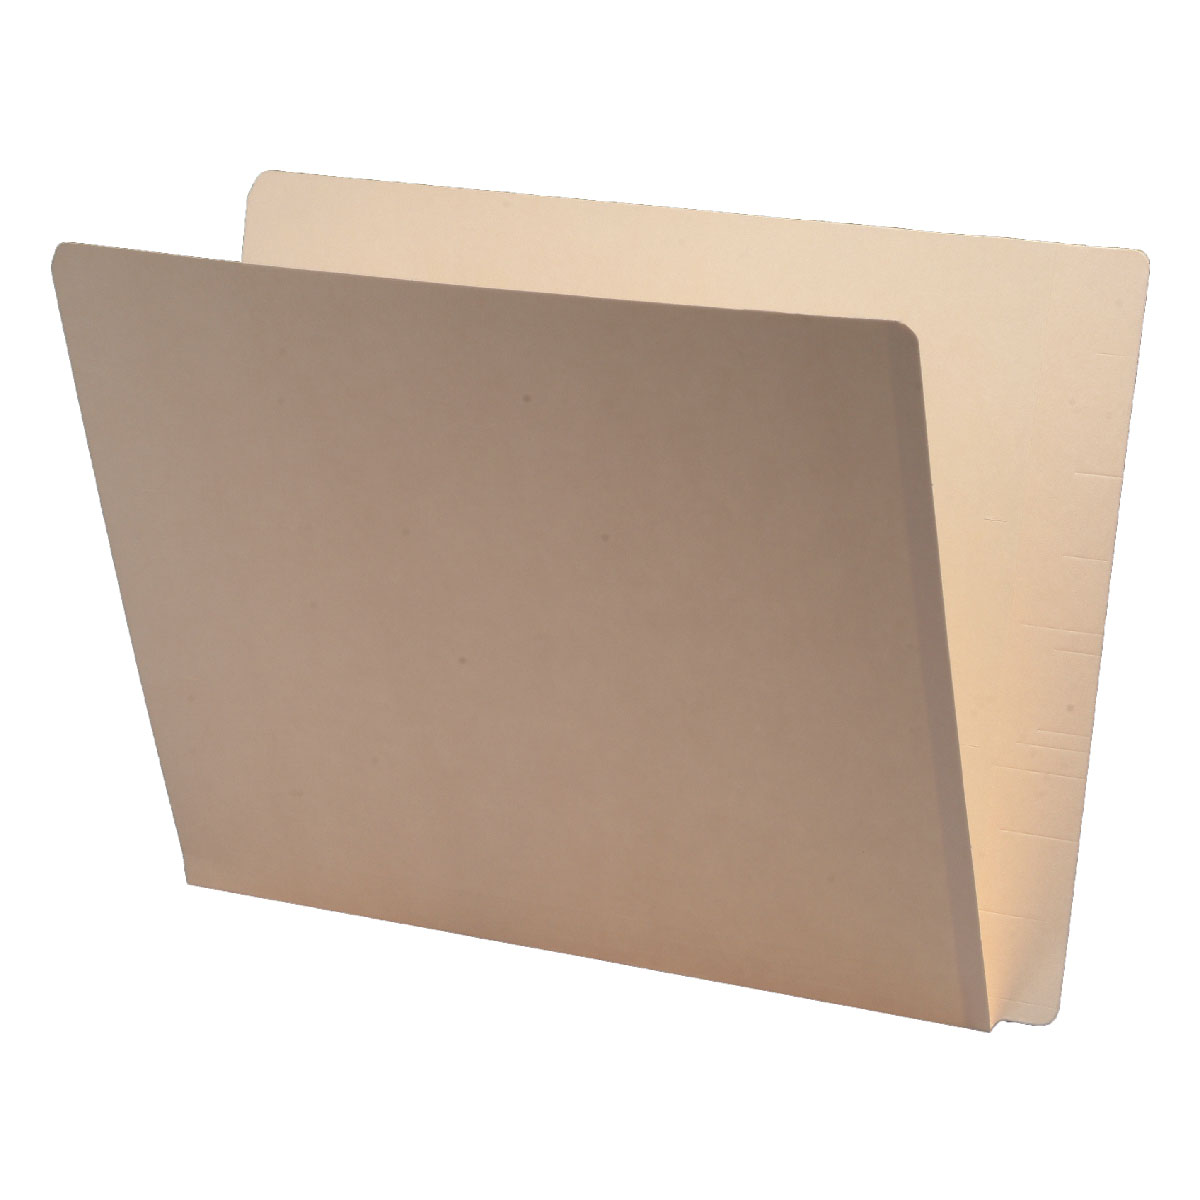 S-9026 - 11 pt Manila Folders, Full Cut 2-Ply Super End Tab, Letter Size (Box of 100)